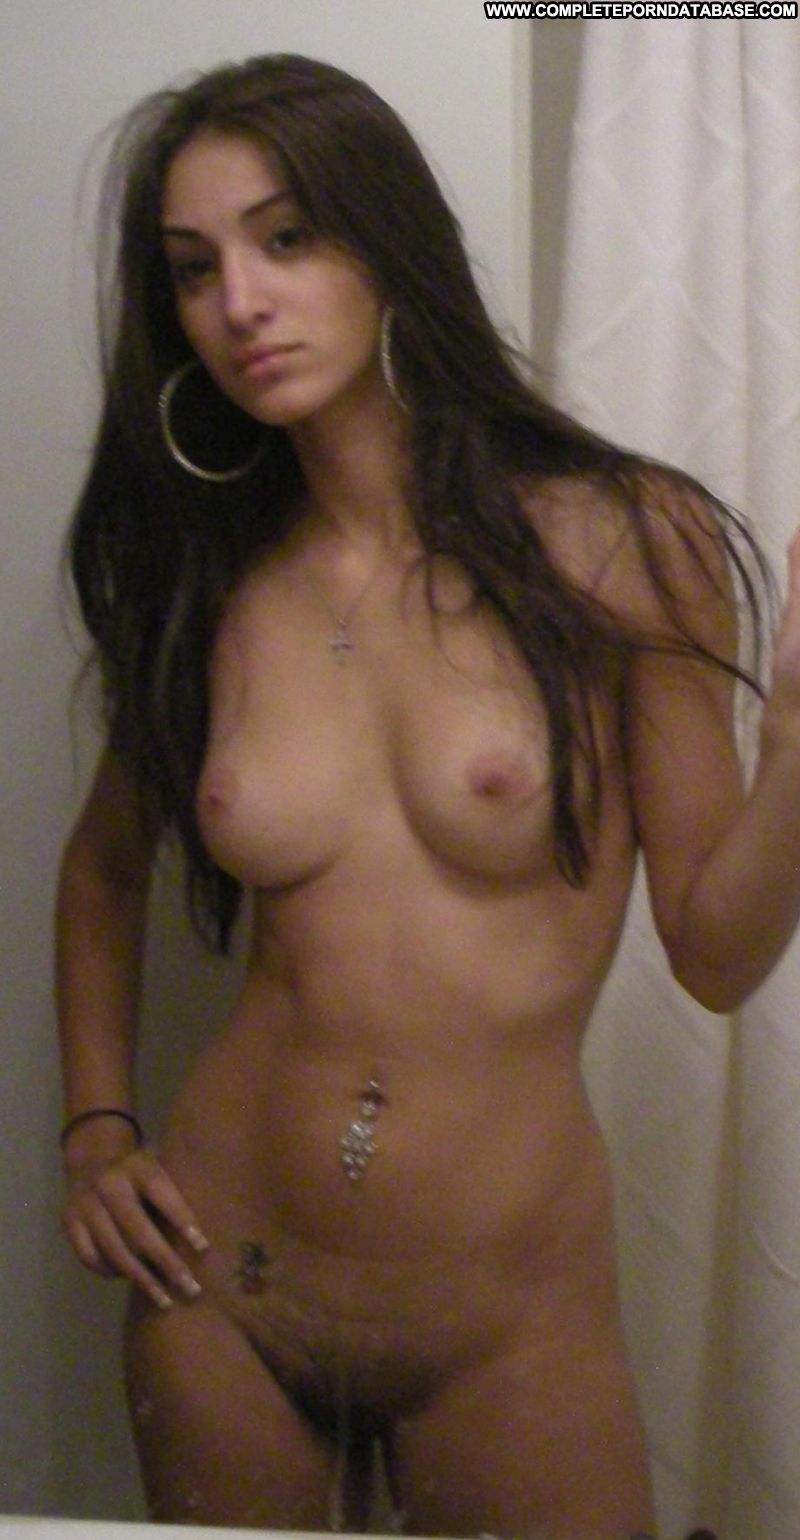 My turkish ex girlfriend 27 years old